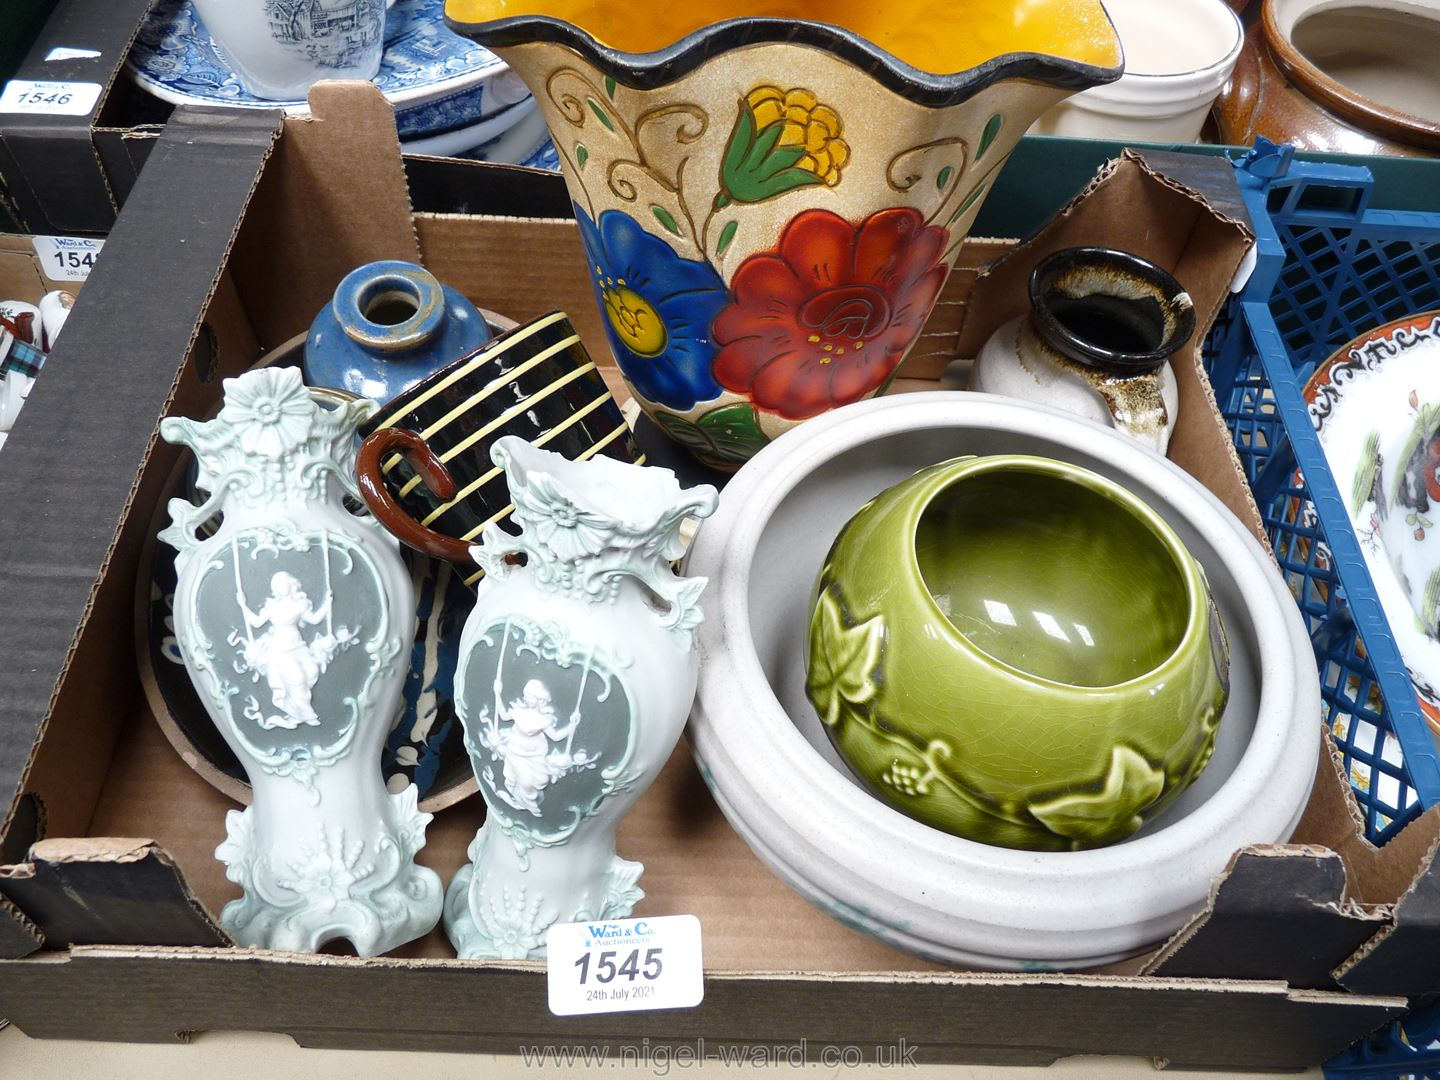 A quantity of pottery including Brentleigh ware cream and floral vase, Dartmouth pottery bowl,